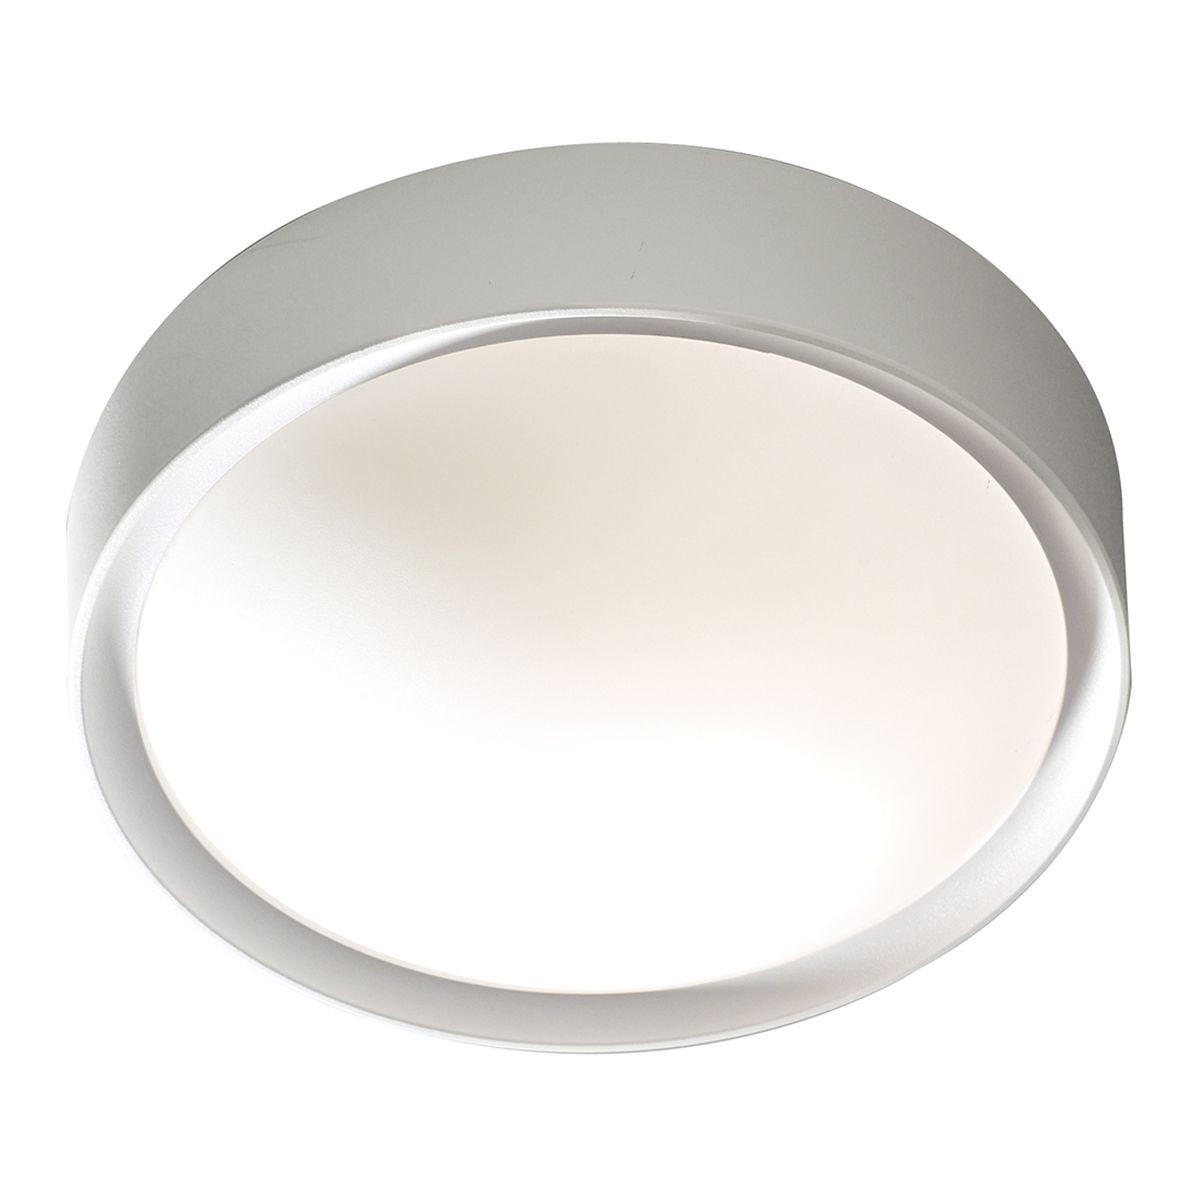 Beta Flush Bathroom Ceiling Light Ip44